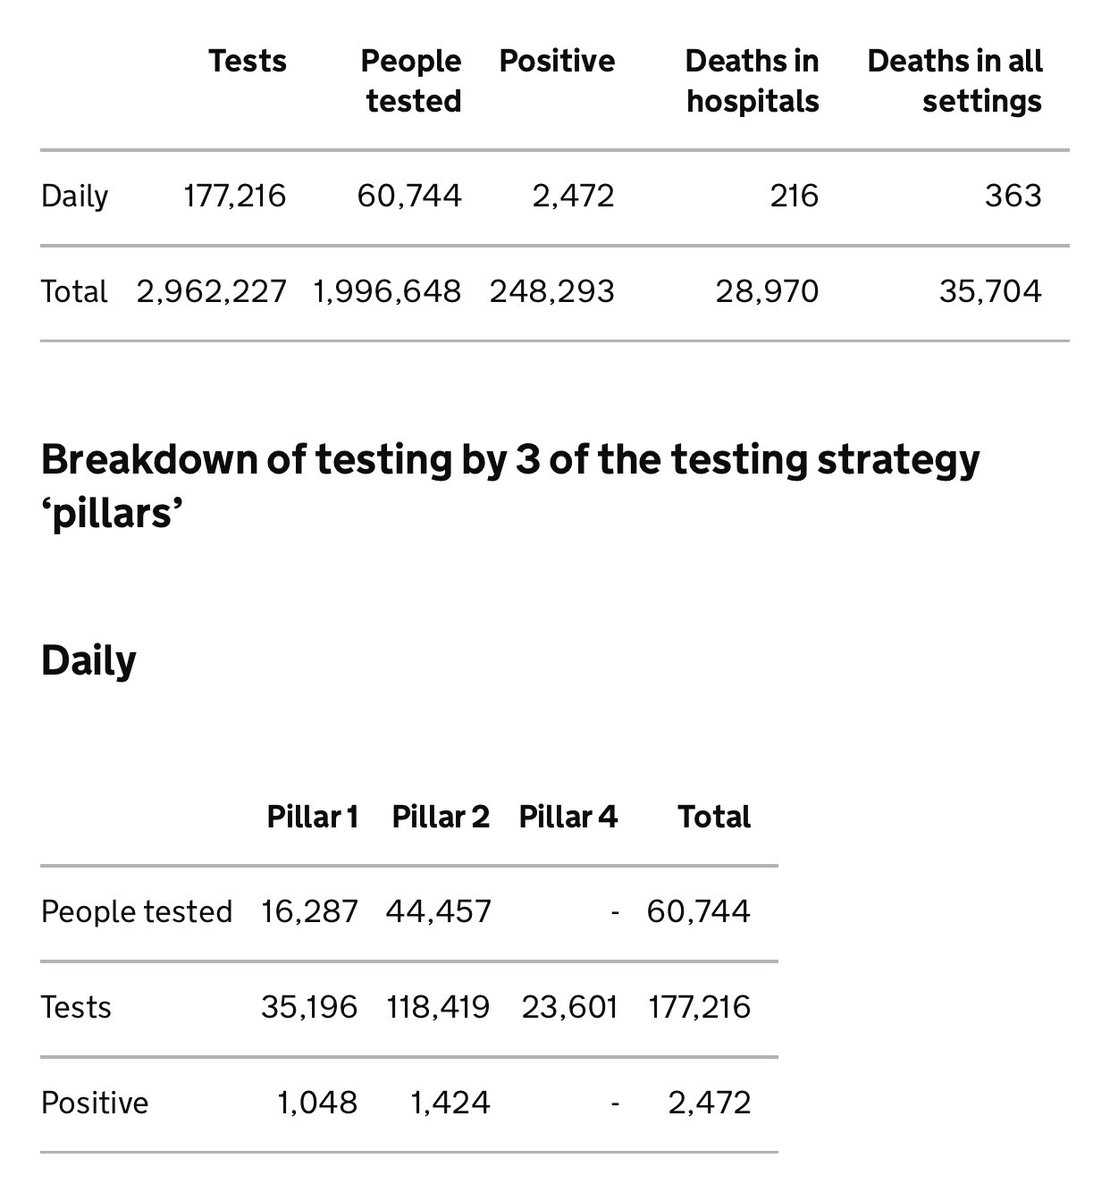 177216 tests on 60744 people. How is the number of tests going up and the number of people being tested going down?? Are they doing more than 2 each in Pillar 2?